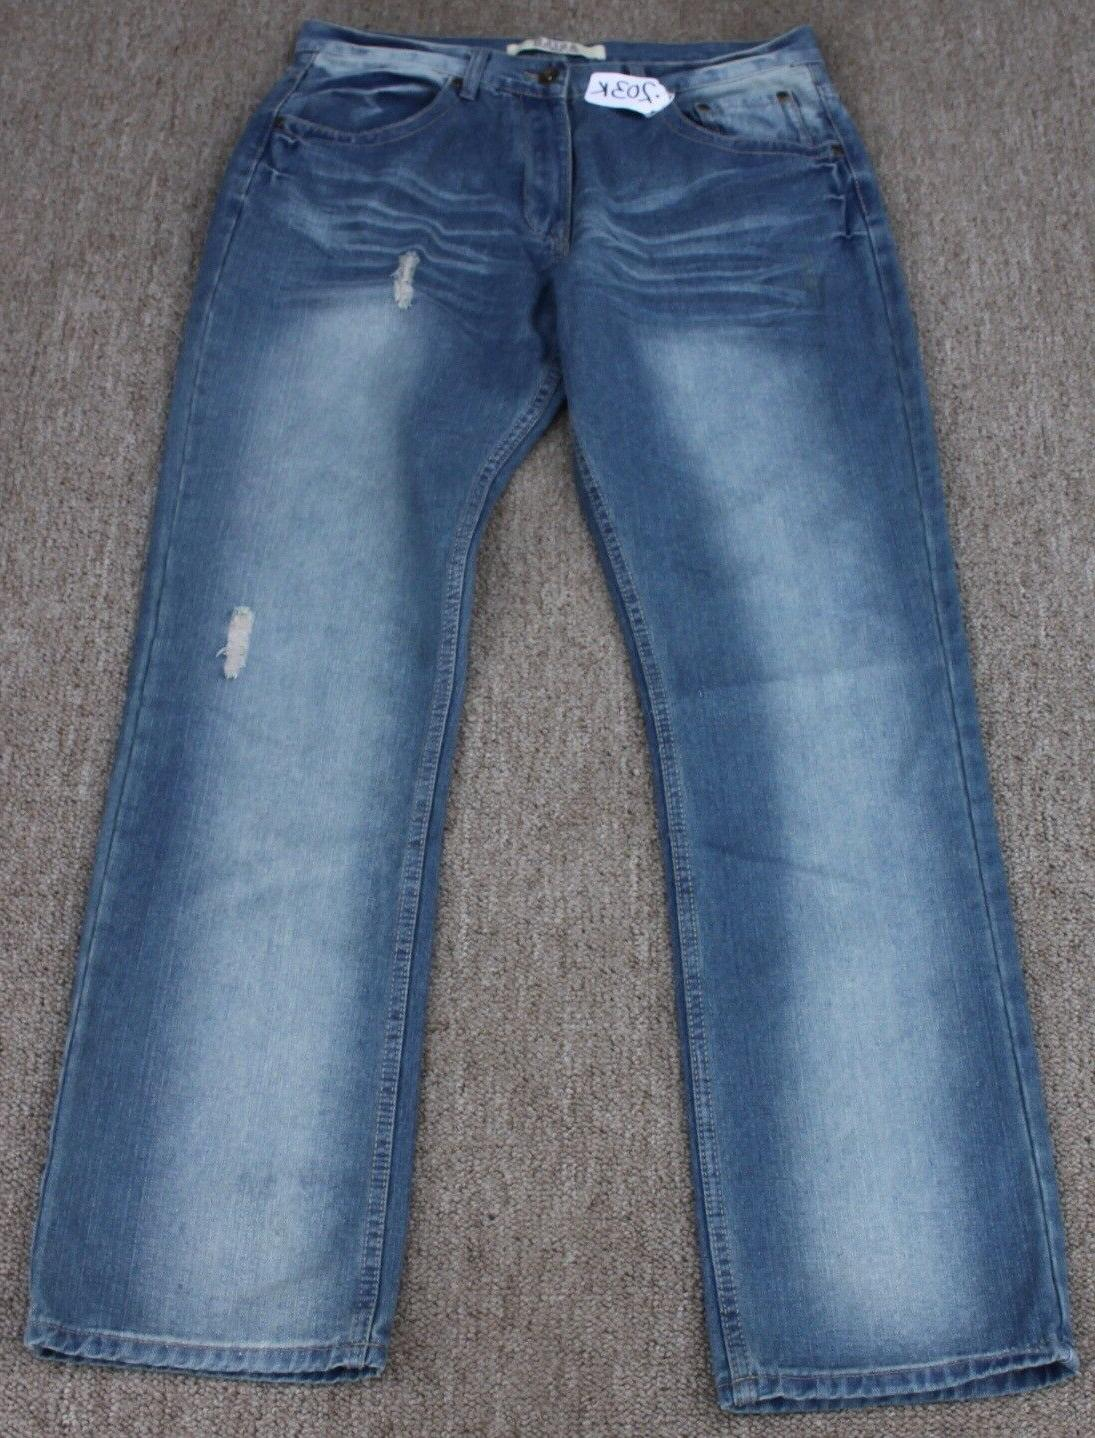 Levis 501 Men's Straight Button 100% Levi's